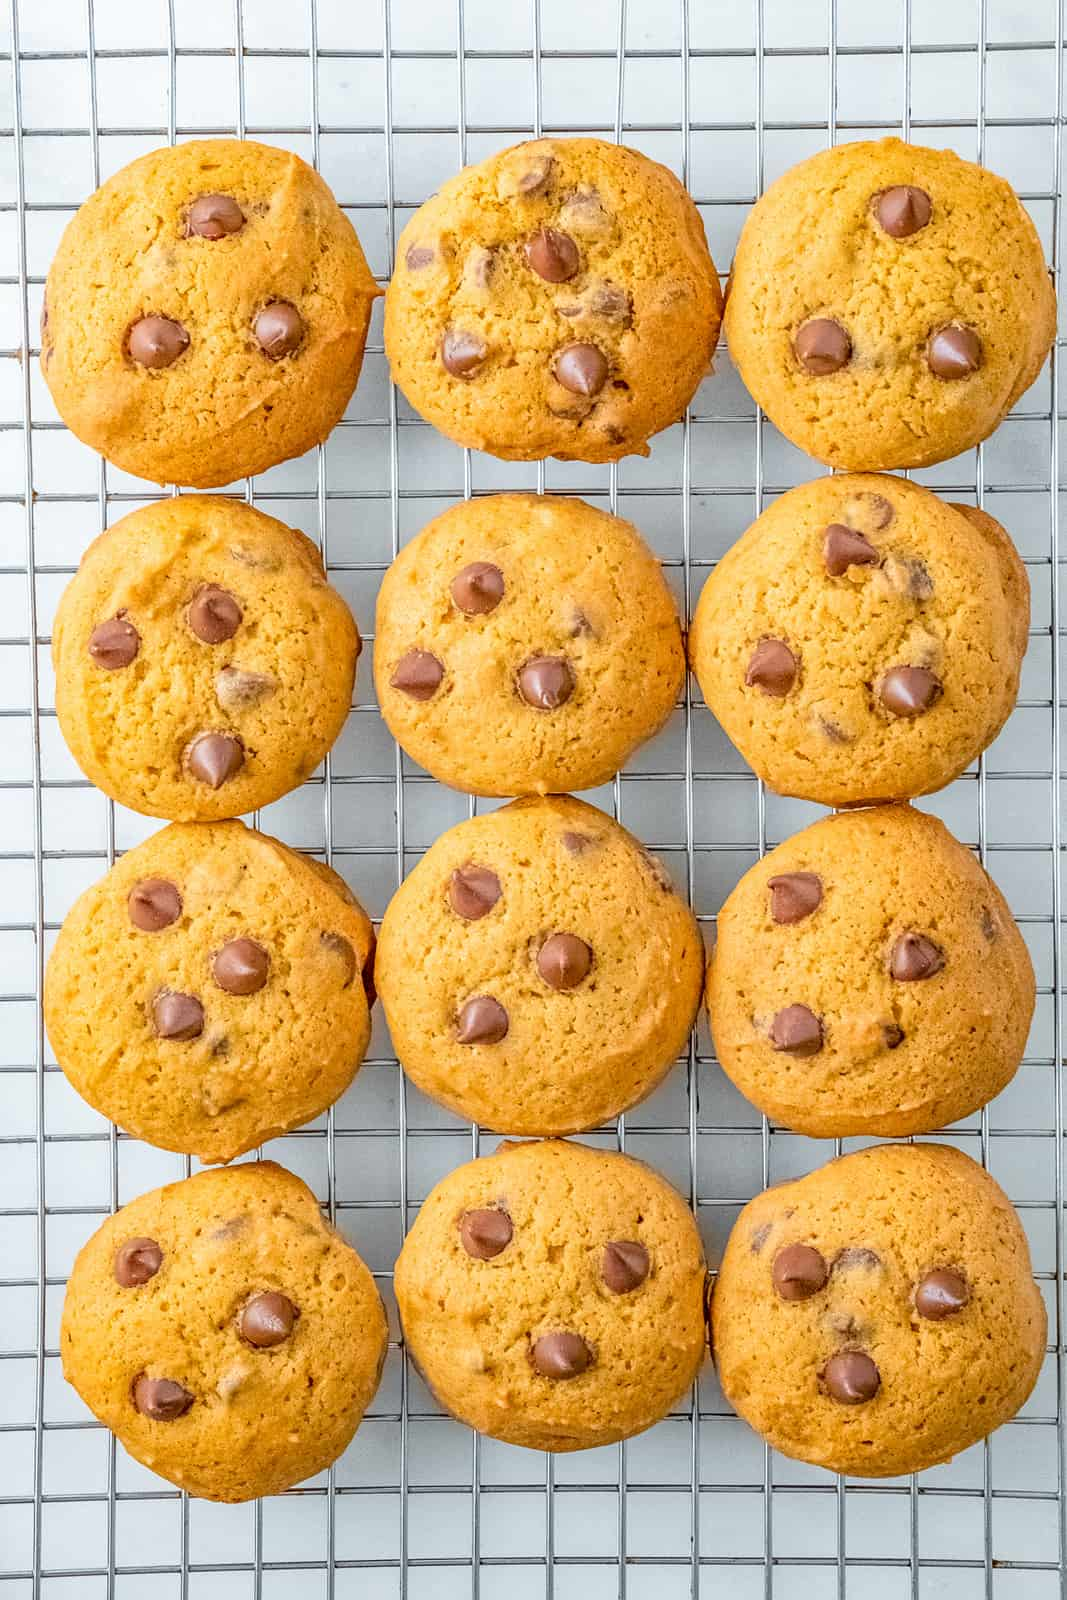 Cookies overhead cooling on wire rack